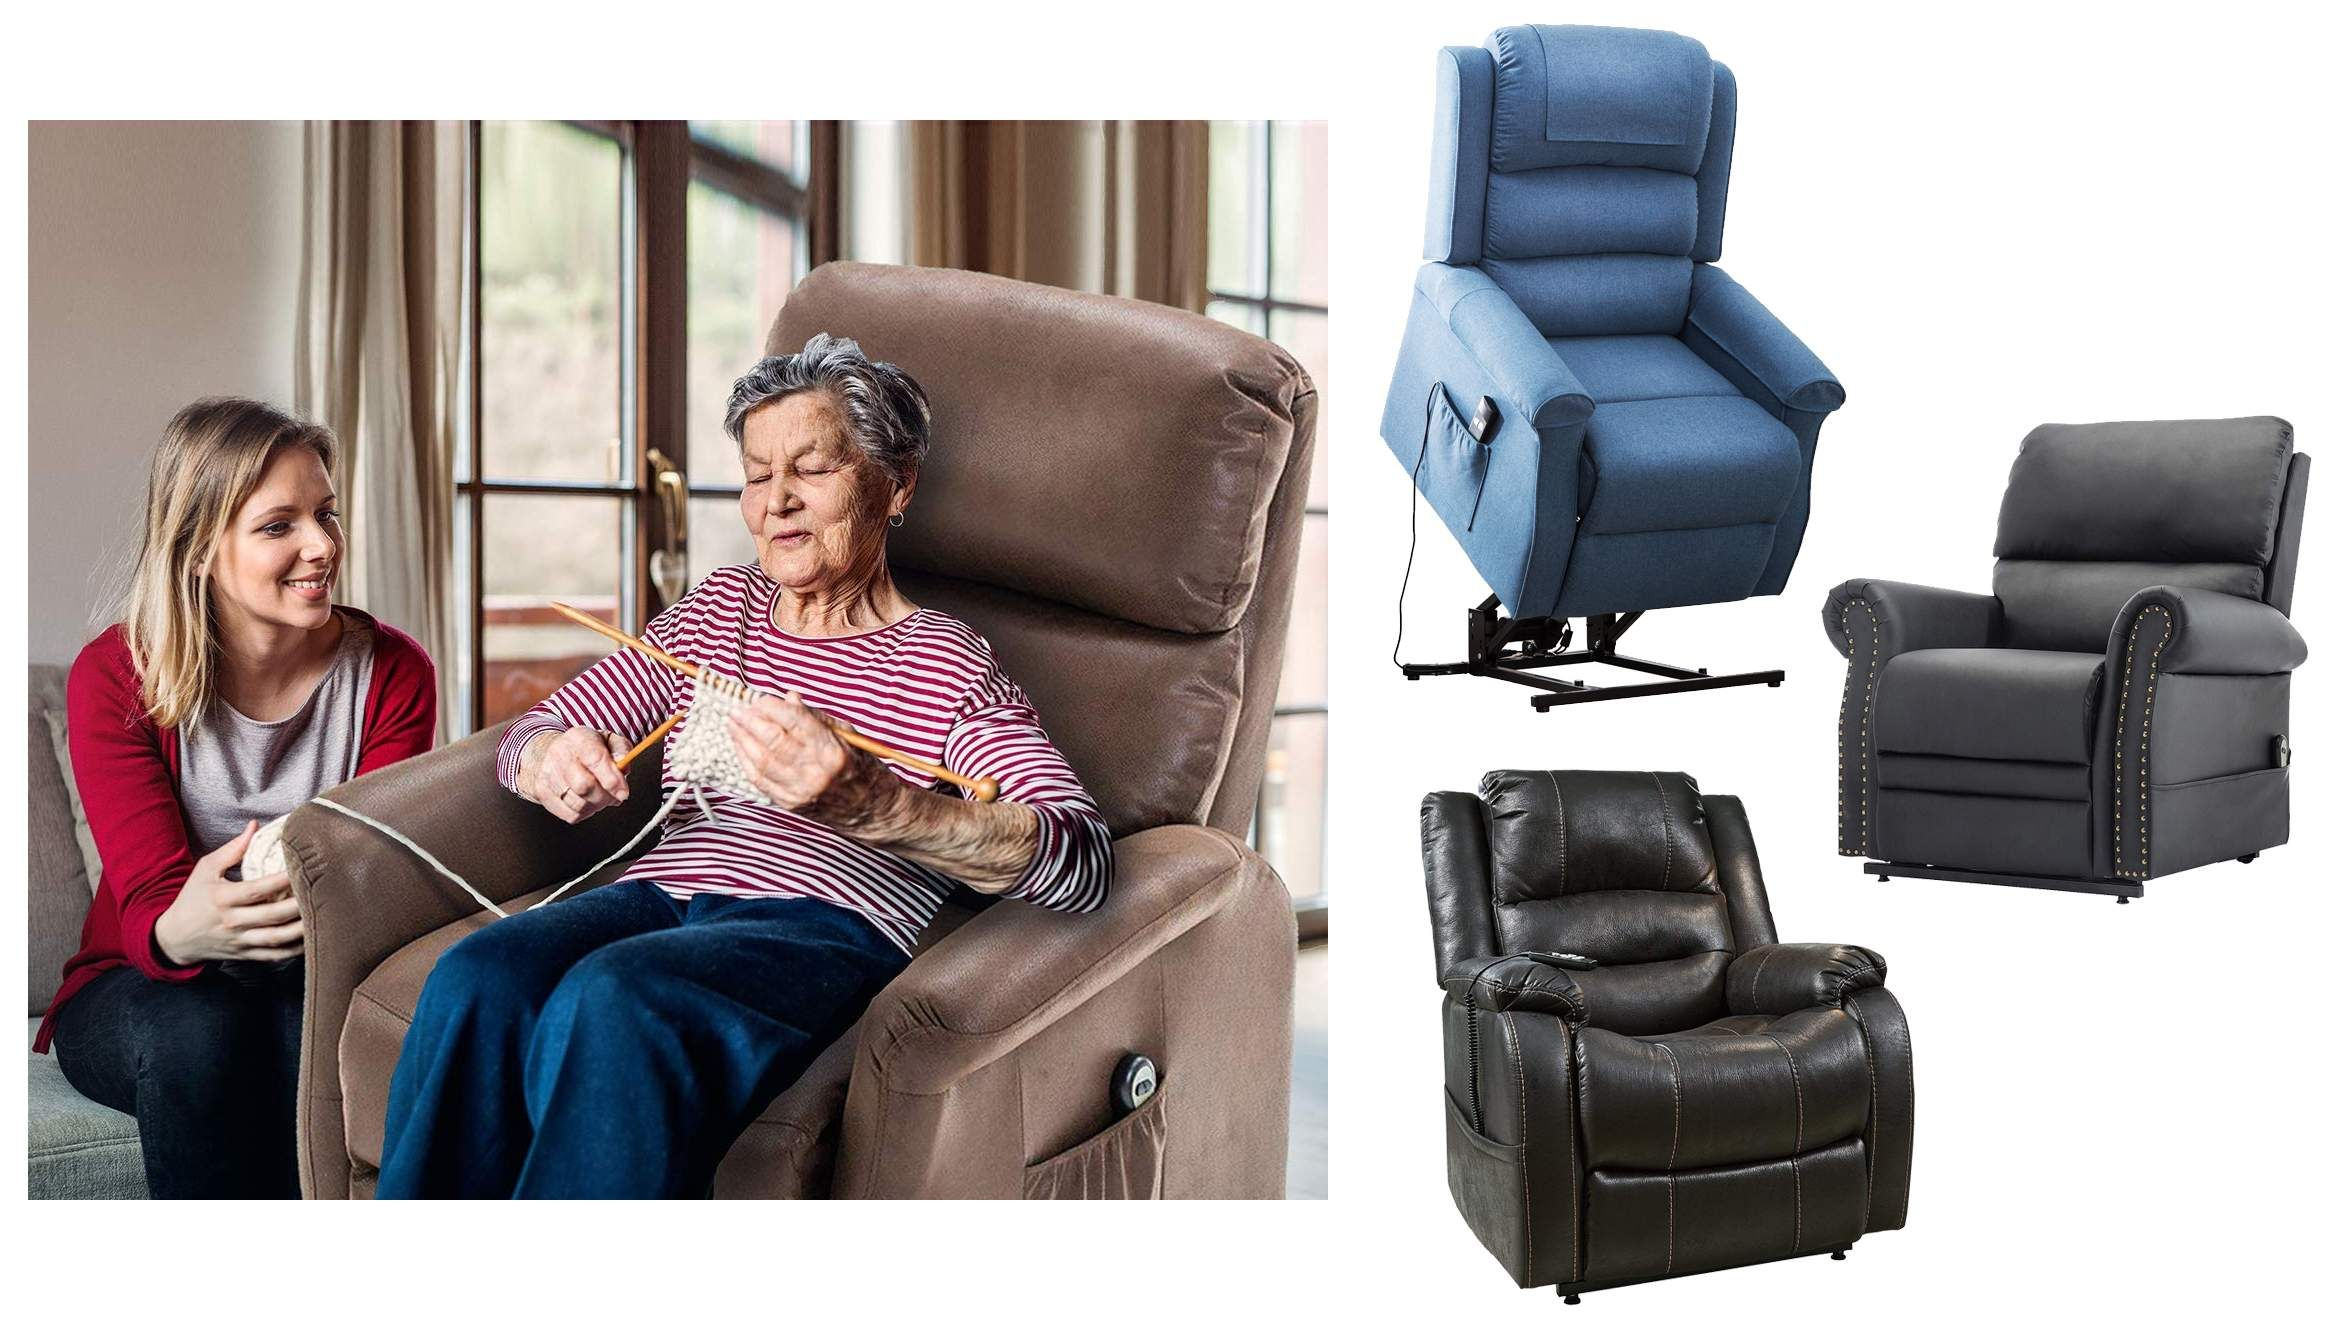 19 Best Lift Chairs For The Elderly The Ultimate Guide Lift